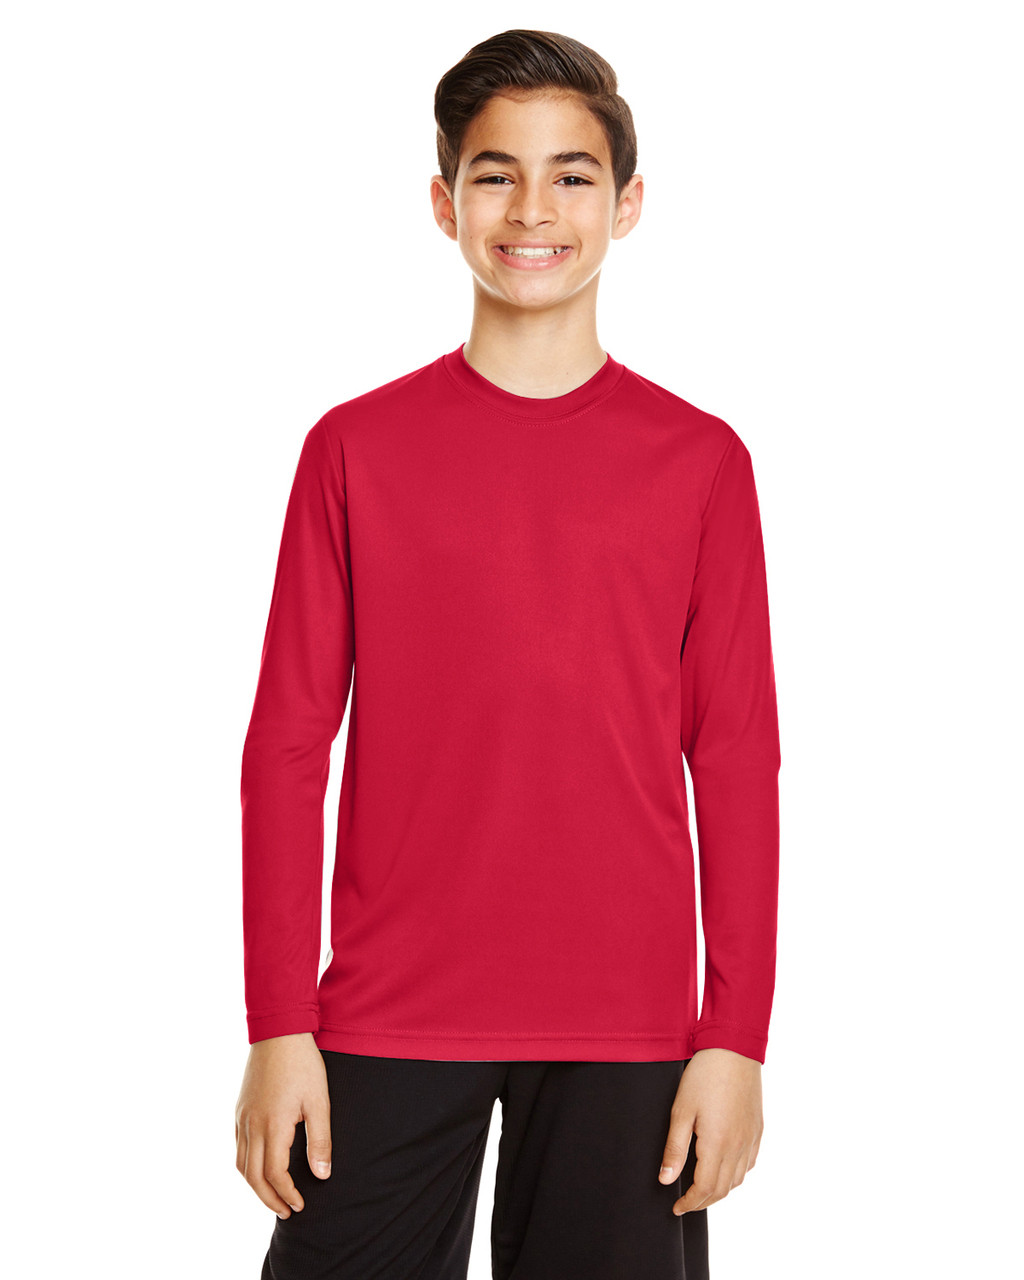 Sport Red - TT11YL Team365 Youth Zone Performance Long Sleeve T-shirt | BlankClothing.ca